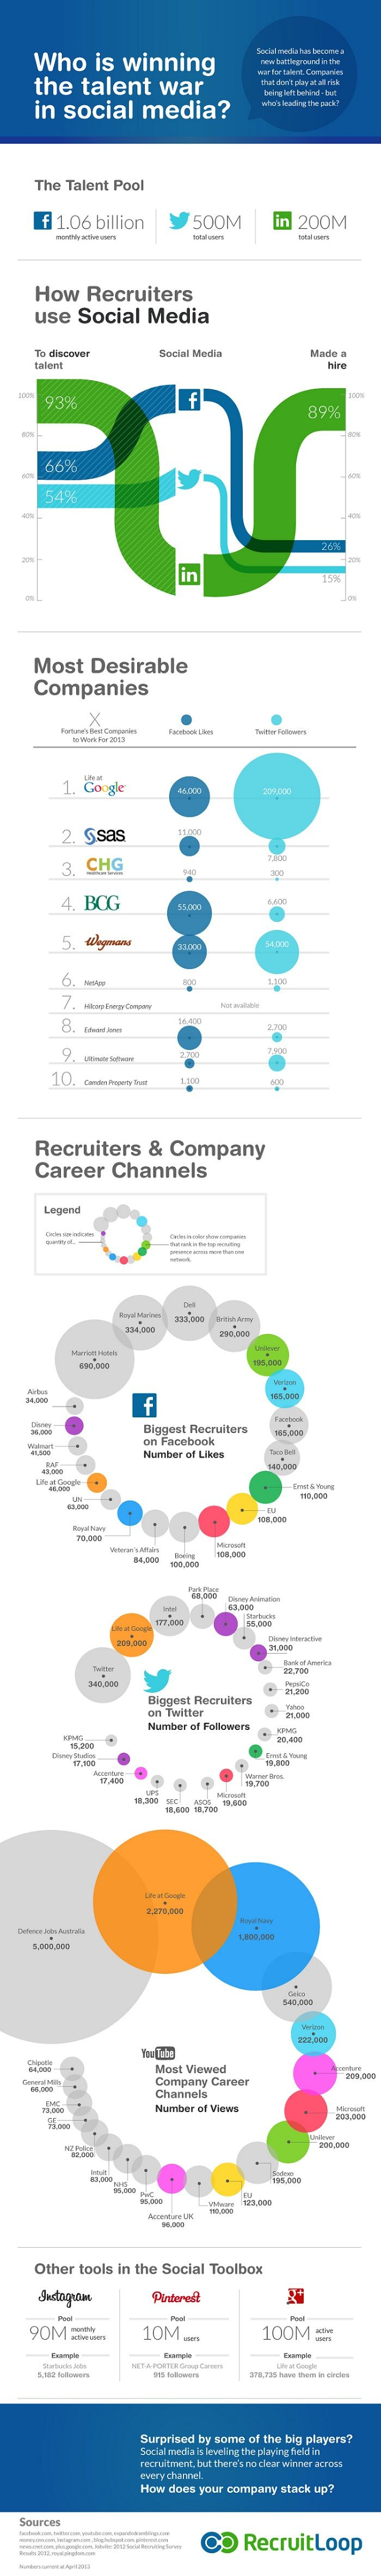 Social Media - Who Is Winning the Talent War in Social Media? [Infographic] : MarketingProfs Article